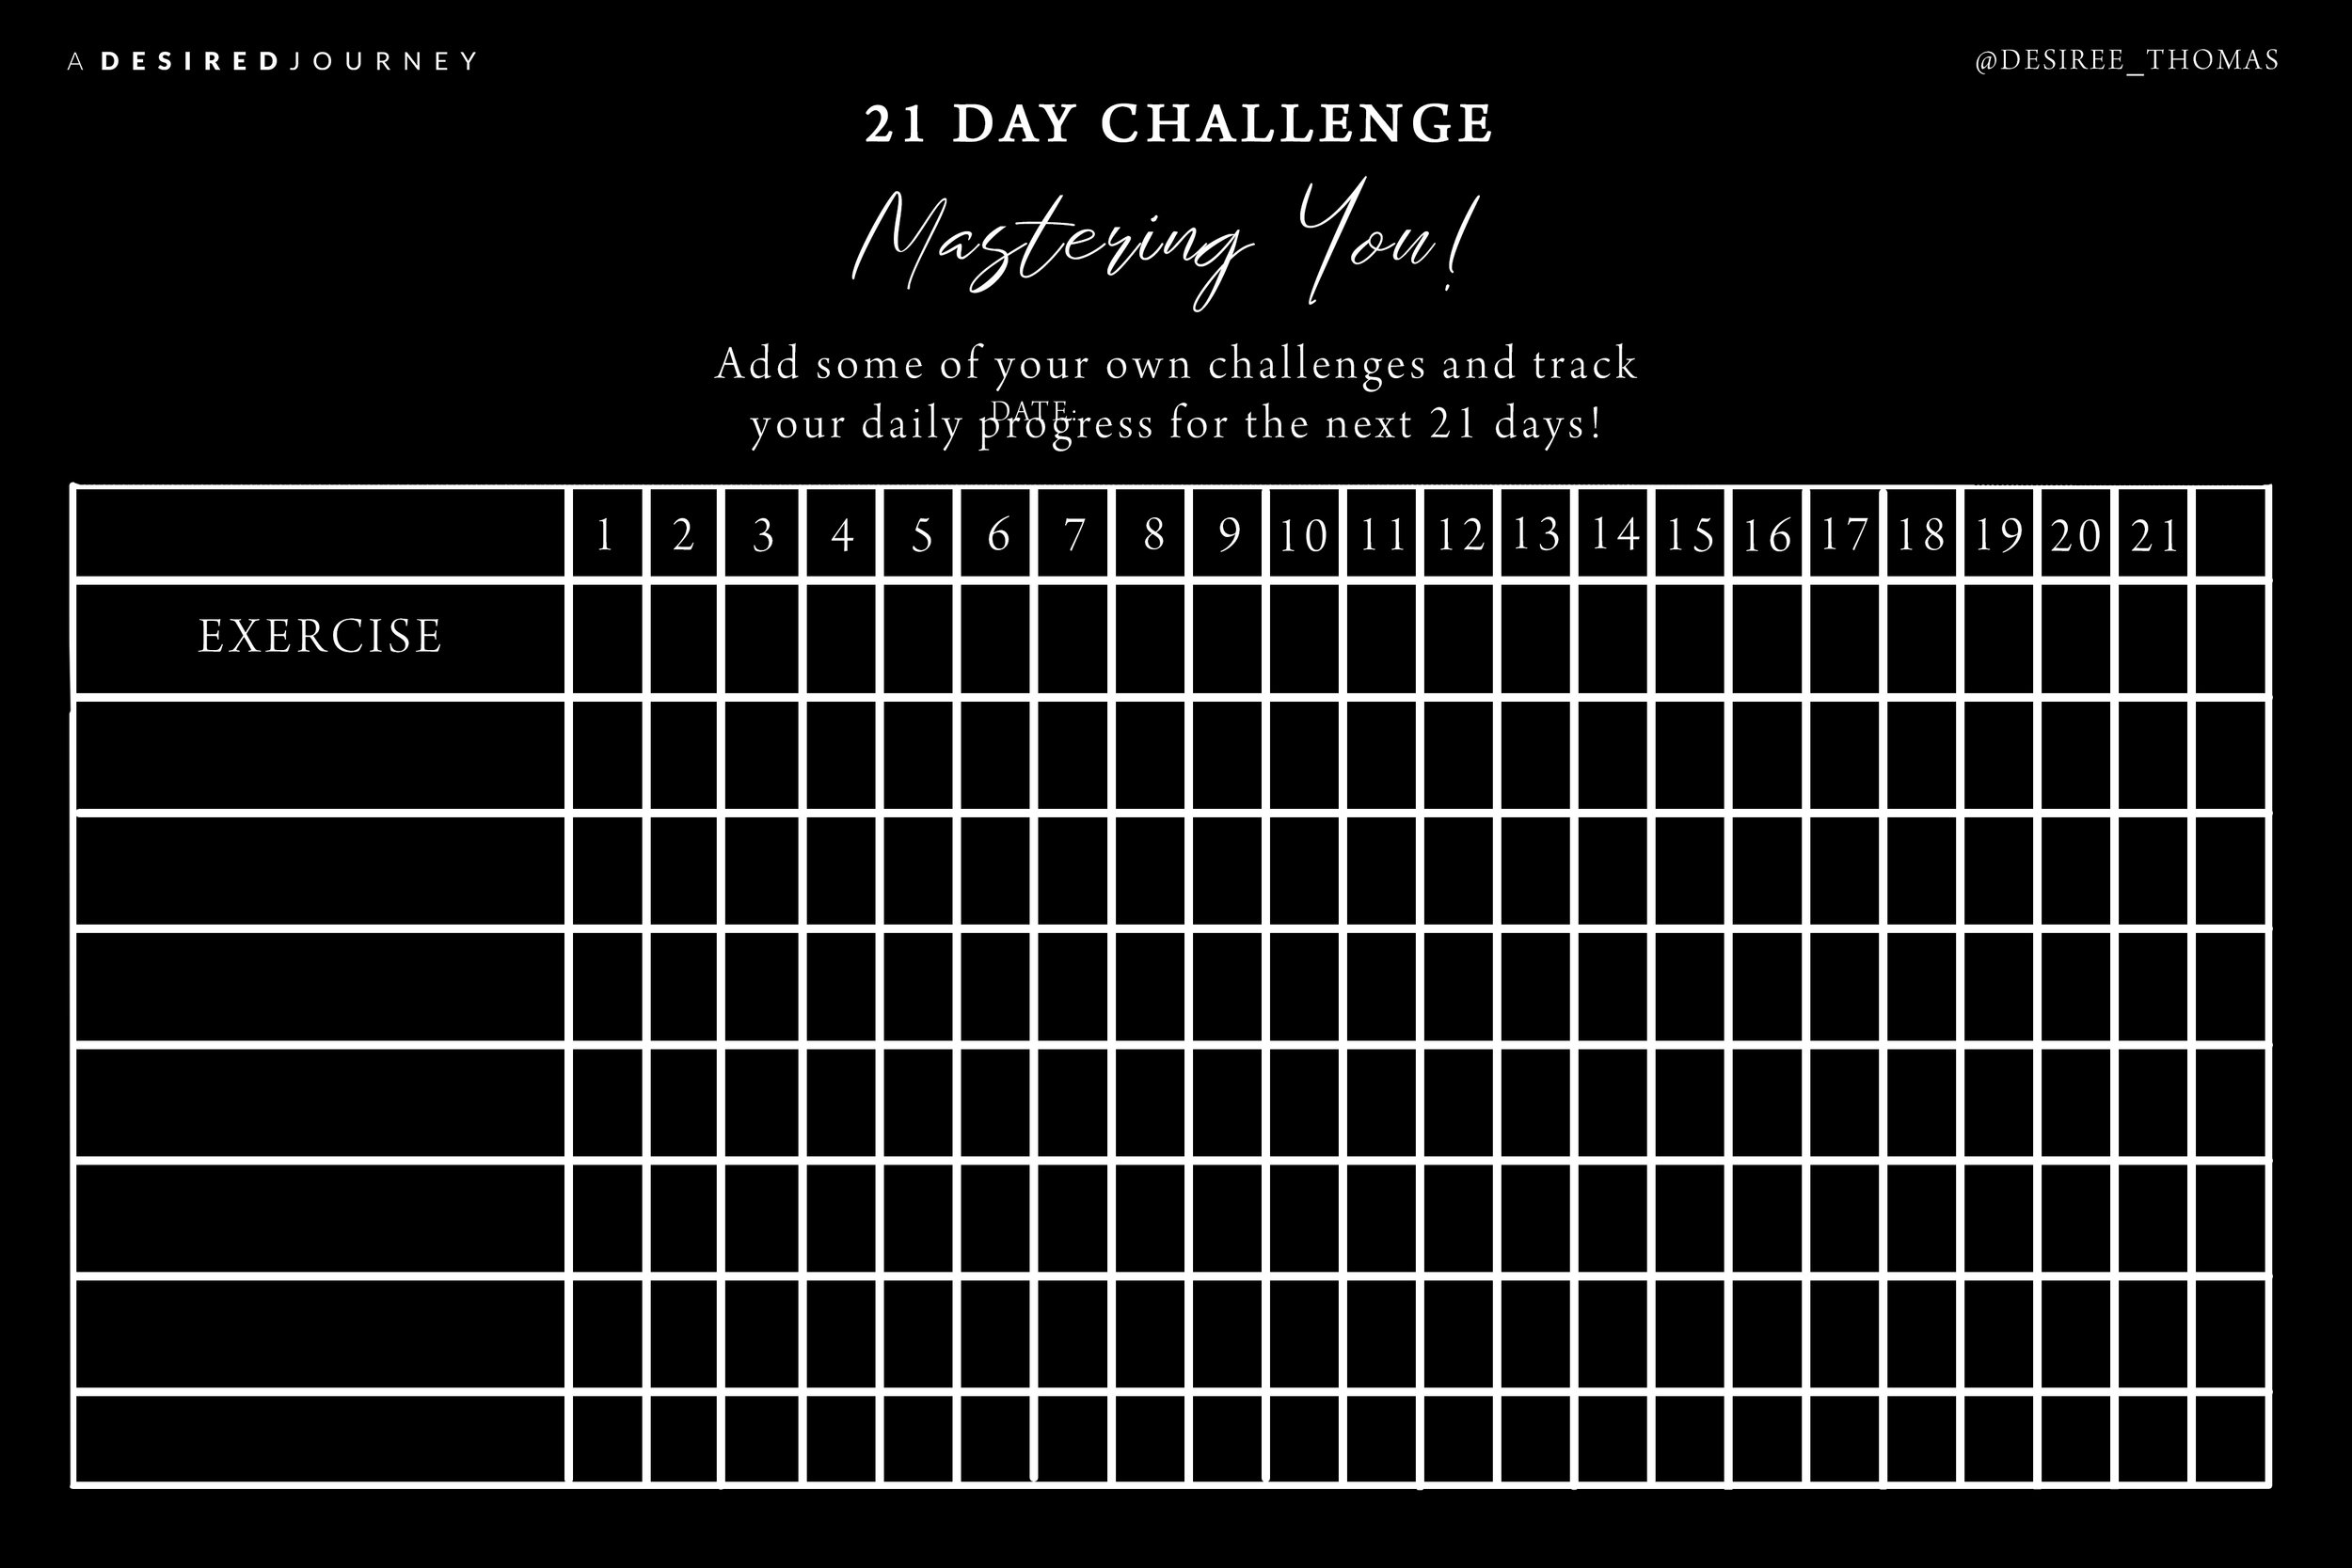 21 Day Challenge - A Desired Journey.jpg